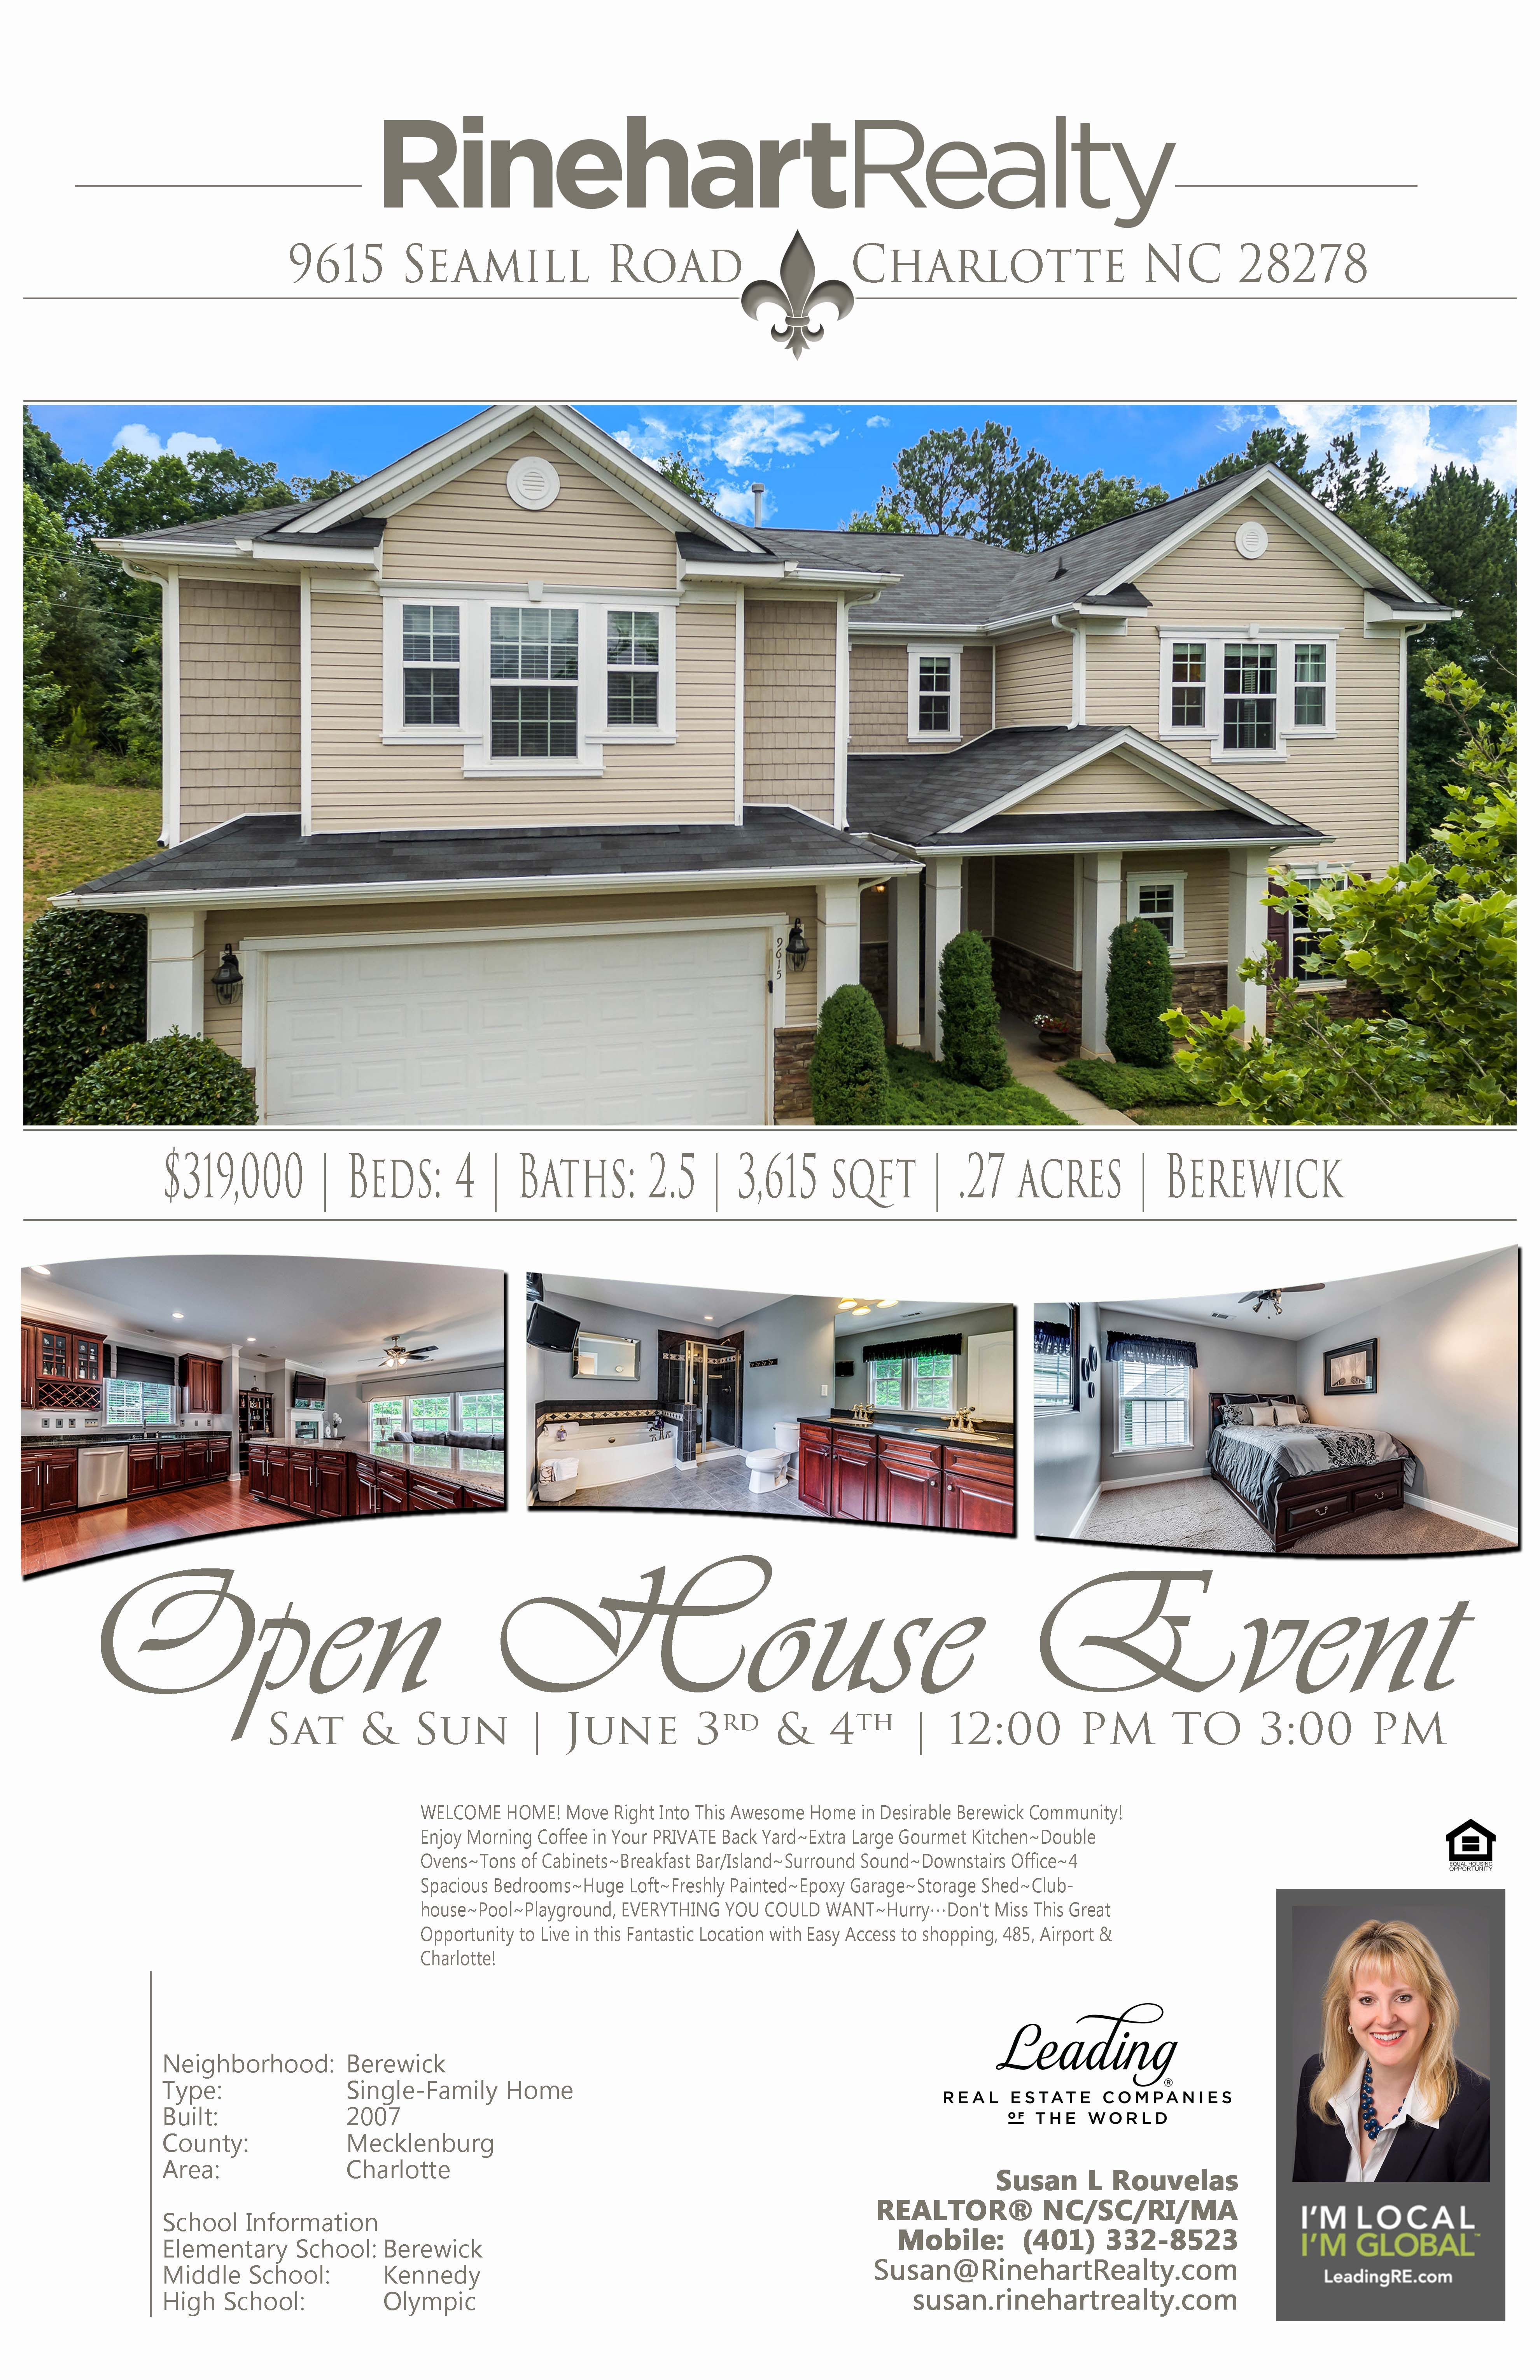 OPEN HOUSE: Saturday, June 3rd & Sunday, June 4th | 12:00 pm to 3:00 pm  9615 Seamill Road, Charlotte, NC 28278  PRICE: $319,000 Beds: 4 | Baths: 2.5 | 3,615 sqft | .27 acres  WELCOME HOME! Move Right Into This Awesome Home in Desirable Berewick Community! Enjoy Morning Coffee in Your PRIVATE Back Yard~Extra Large Gourmet Kitchen~Double Ovens~Tons of Cabinets~Breakfast Bar/Island~Surround Sound~Downstairs Office~4 Spacious Bedrooms~Huge Loft~Freshly Painted~Epoxy Garage~Storage Shed~Clubhouse ~Pool~Playground, EVERYTHING YOU COULD WANT~HurryDon't Miss This Great Opportunity to Live in this Fantastic Location with Easy Access to shopping, 485, Airport & Charlotte!  Hosted by:  Susan L Rouvelas REALTOR® NC/SC/RI/MA Mobile: (401) 332-8523 Susan@RinehartRealty.com susan.rinehartrealty.com